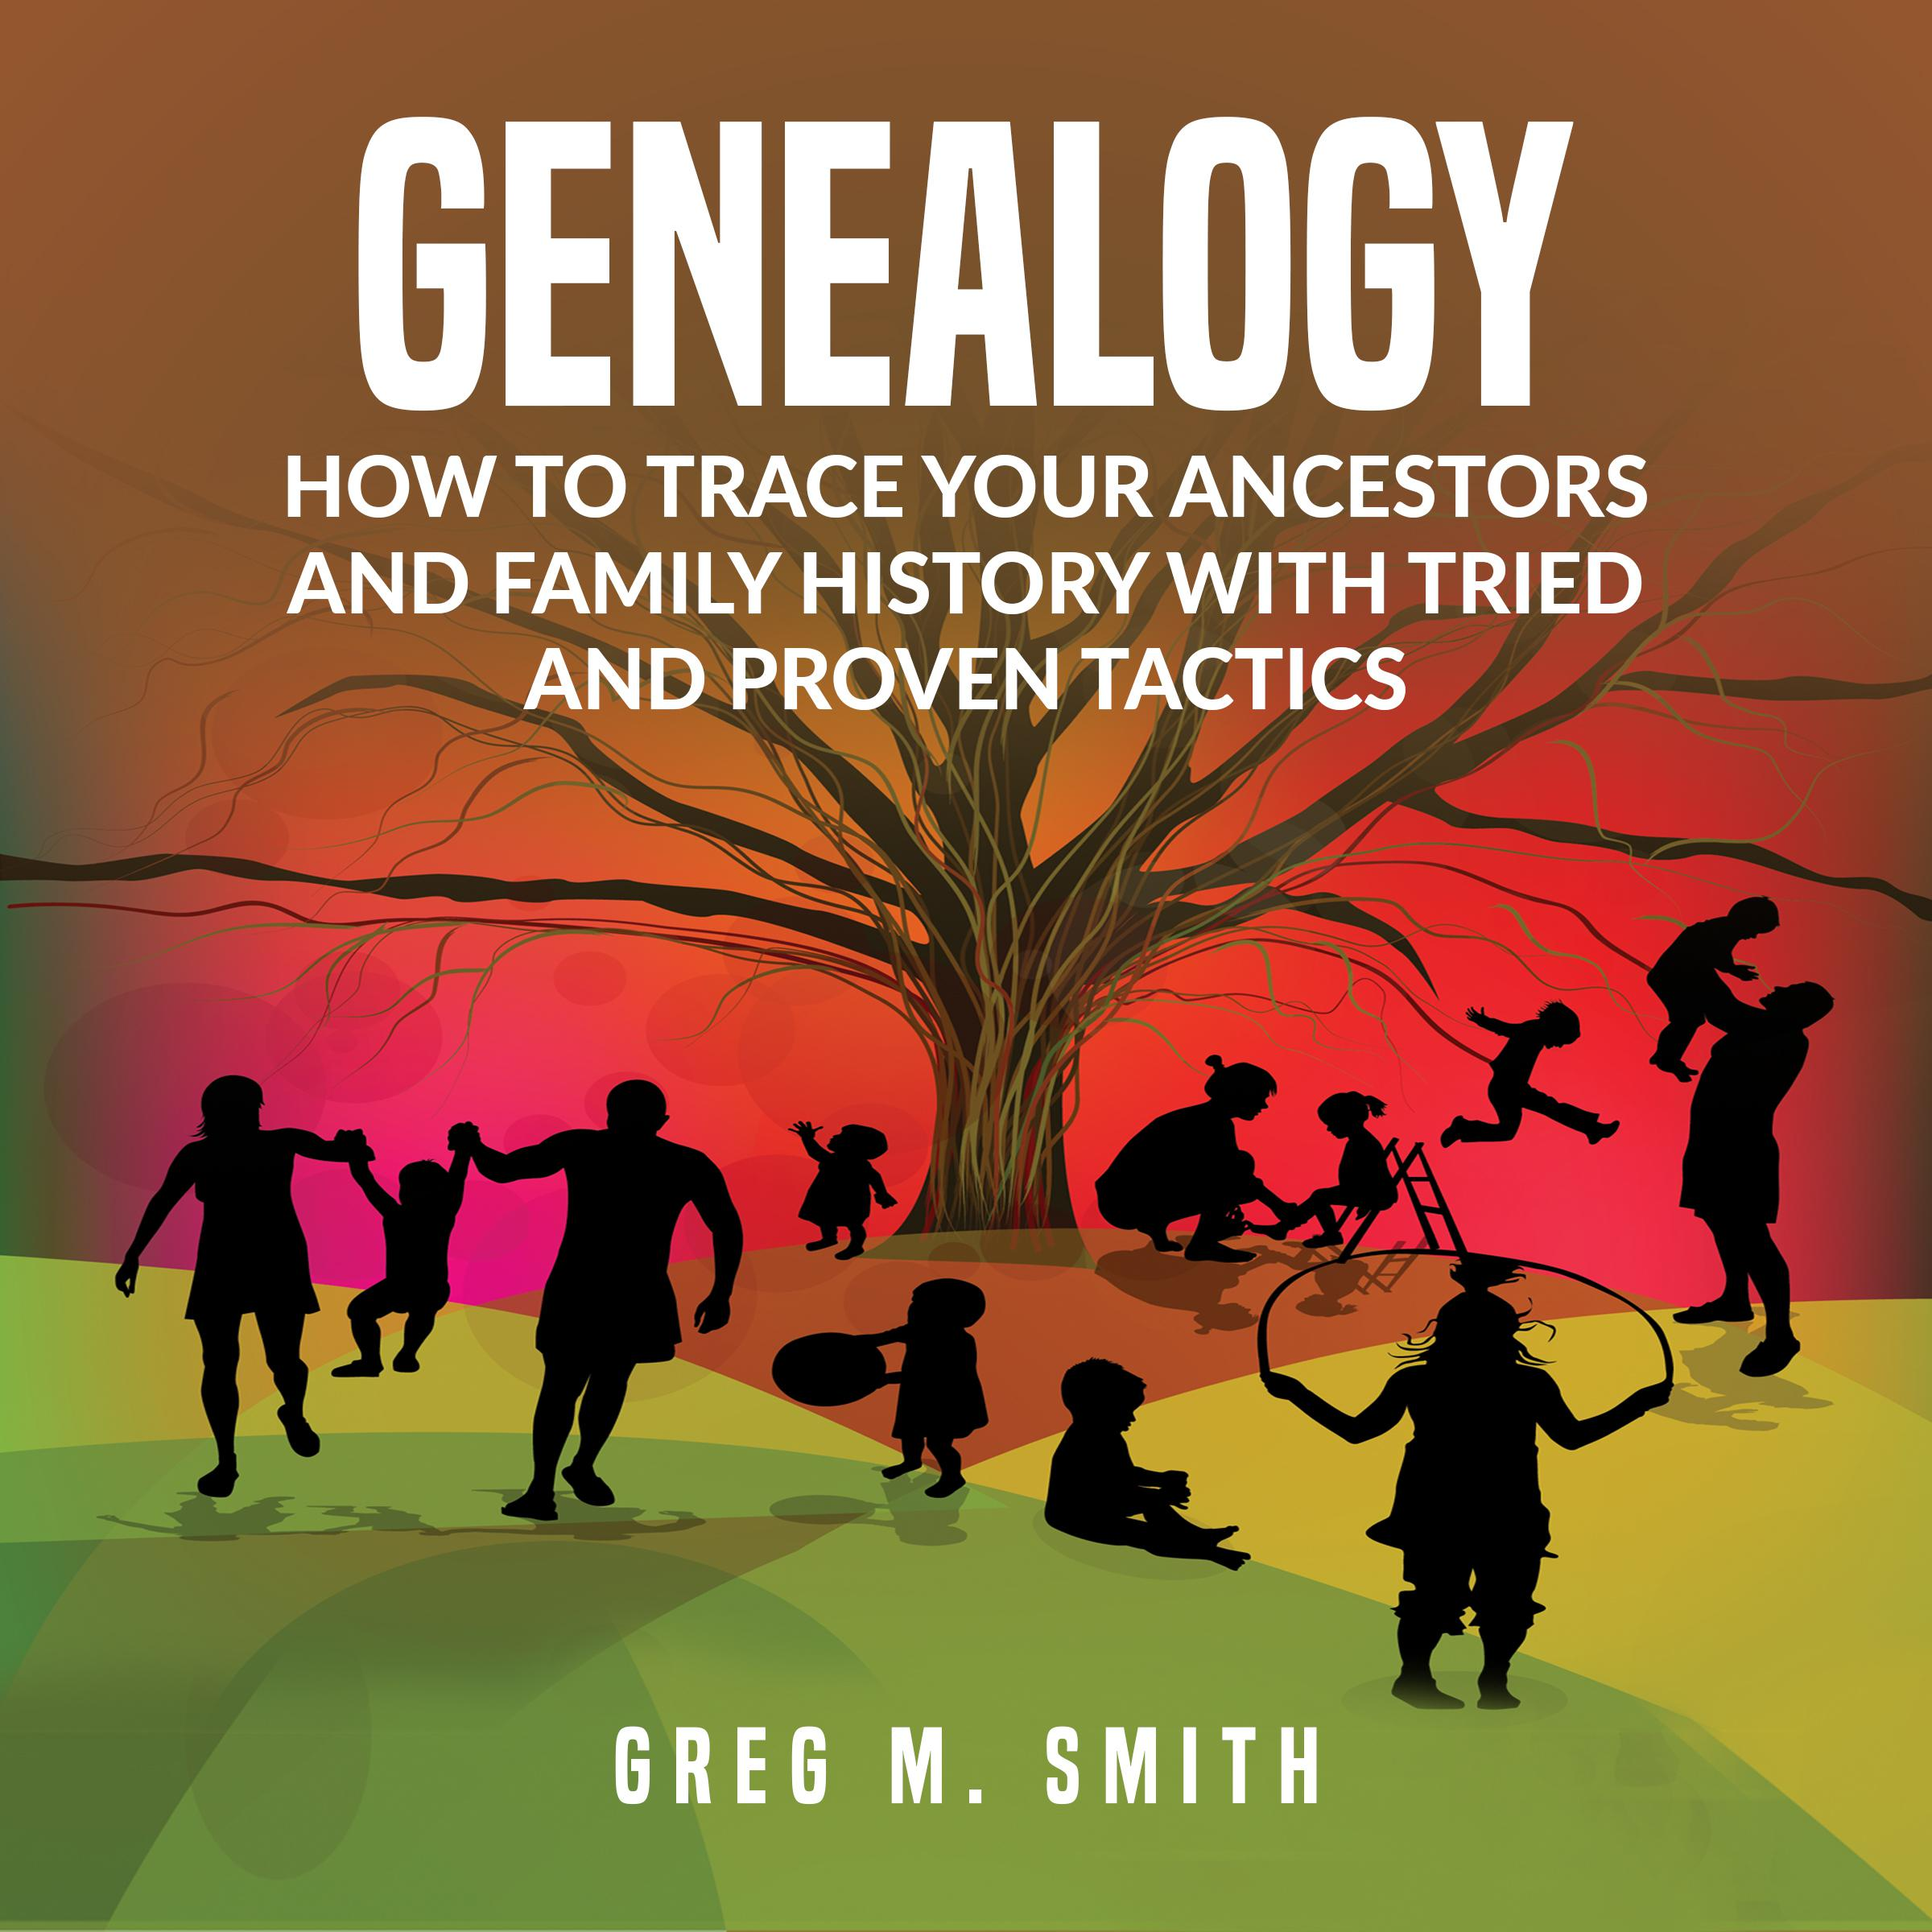 Printable Genealogy: How to Trace Your Ancestors And Family History With Tried and Proven Tactics: How to Trace Your Ancestors And Family History With Tried and Proven Tactics Audiobook Cover Art